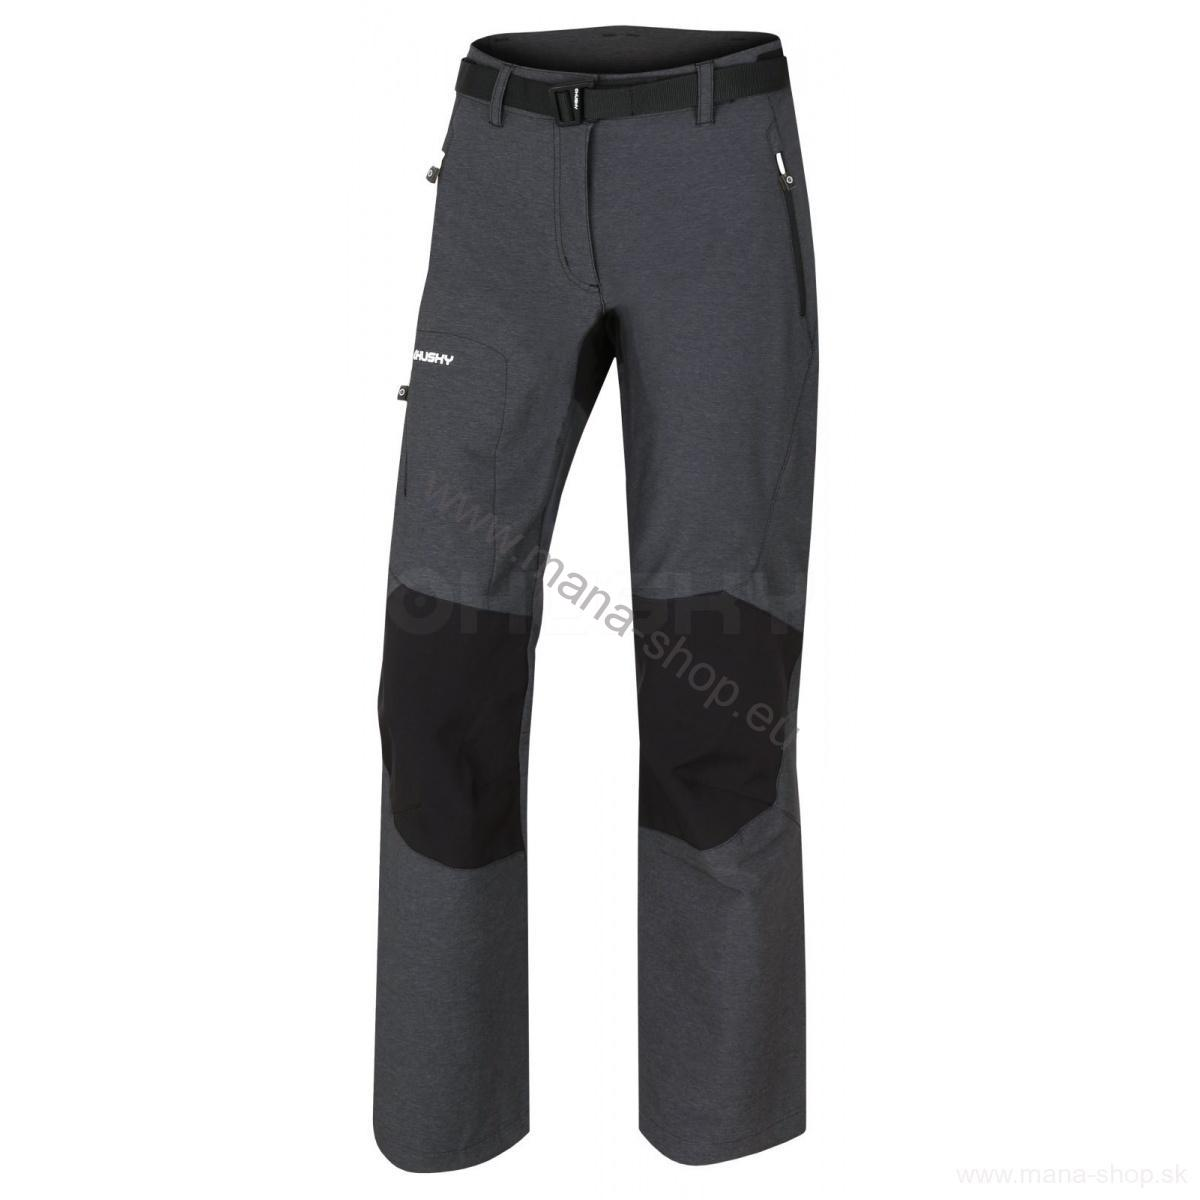 Softshell Hose KLASS L NEW schwarz